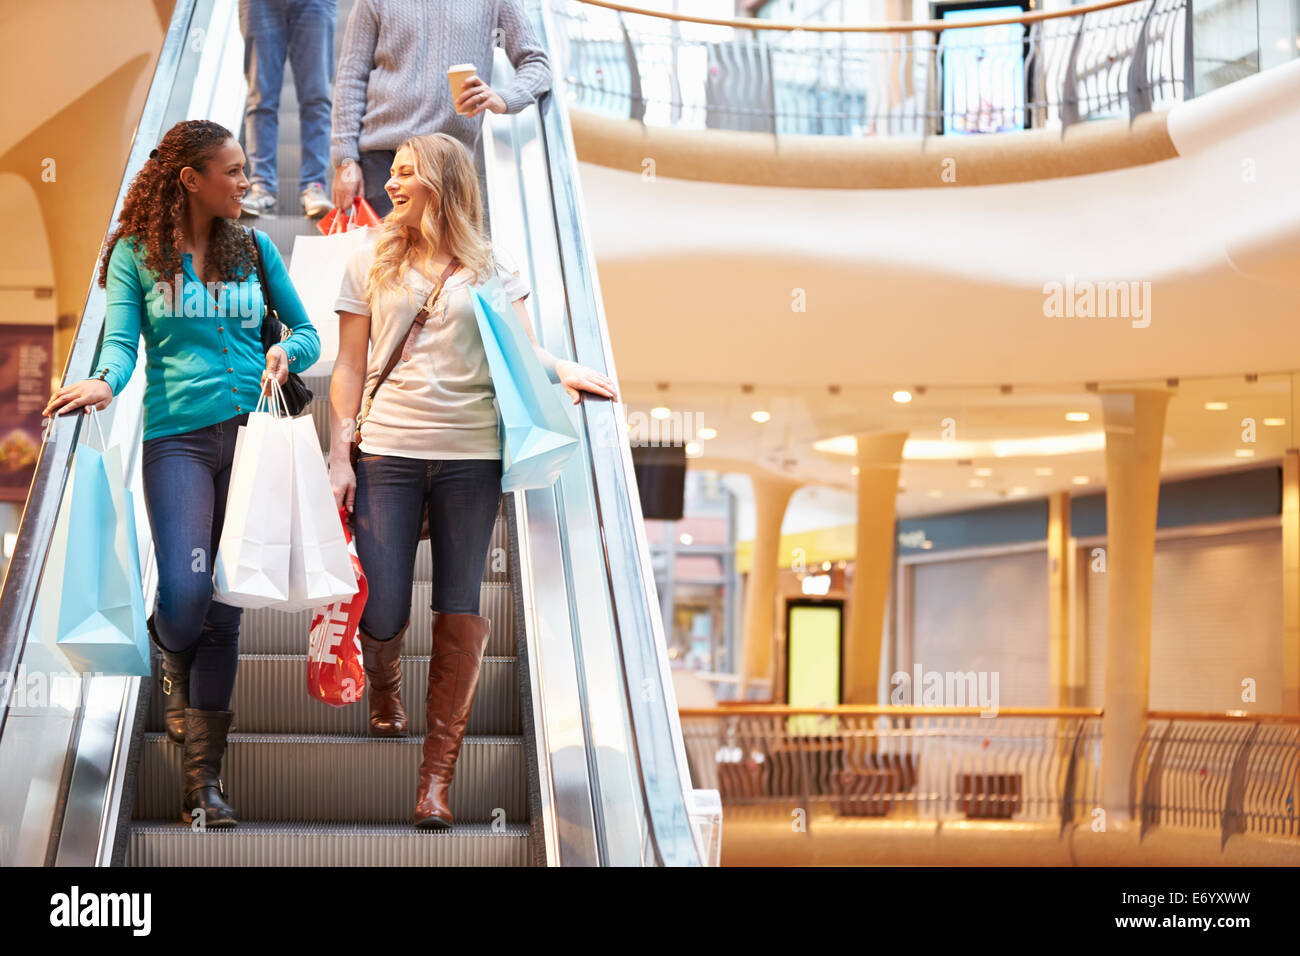 Two Female Friends On Escalator In Shopping Mall - Stock Image